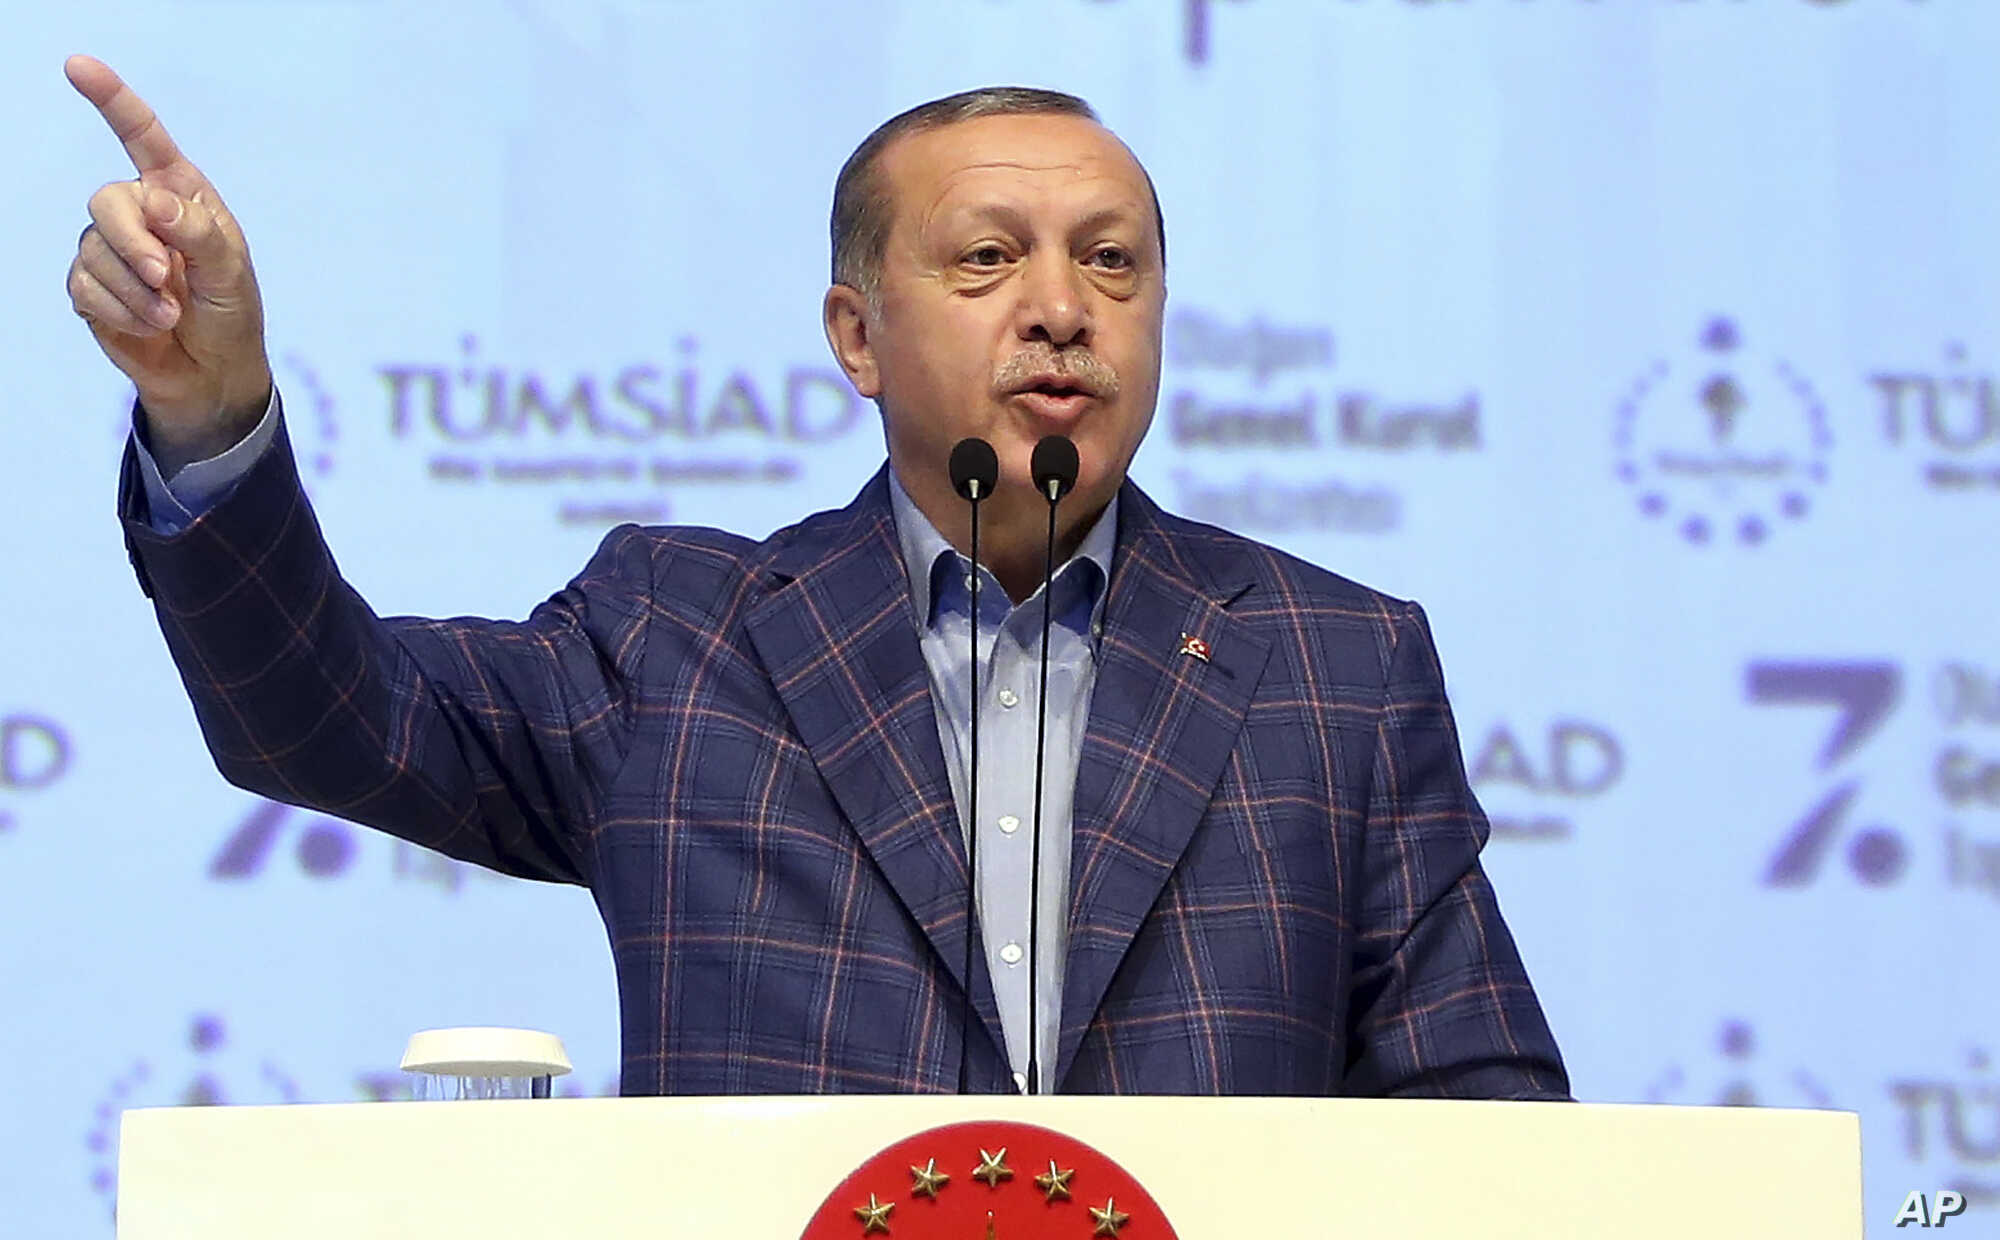 Turkey's President Recep Tayyip Erdogan, gestures as he delivers a speech at a conference in Istanbul, April 29, 2017.